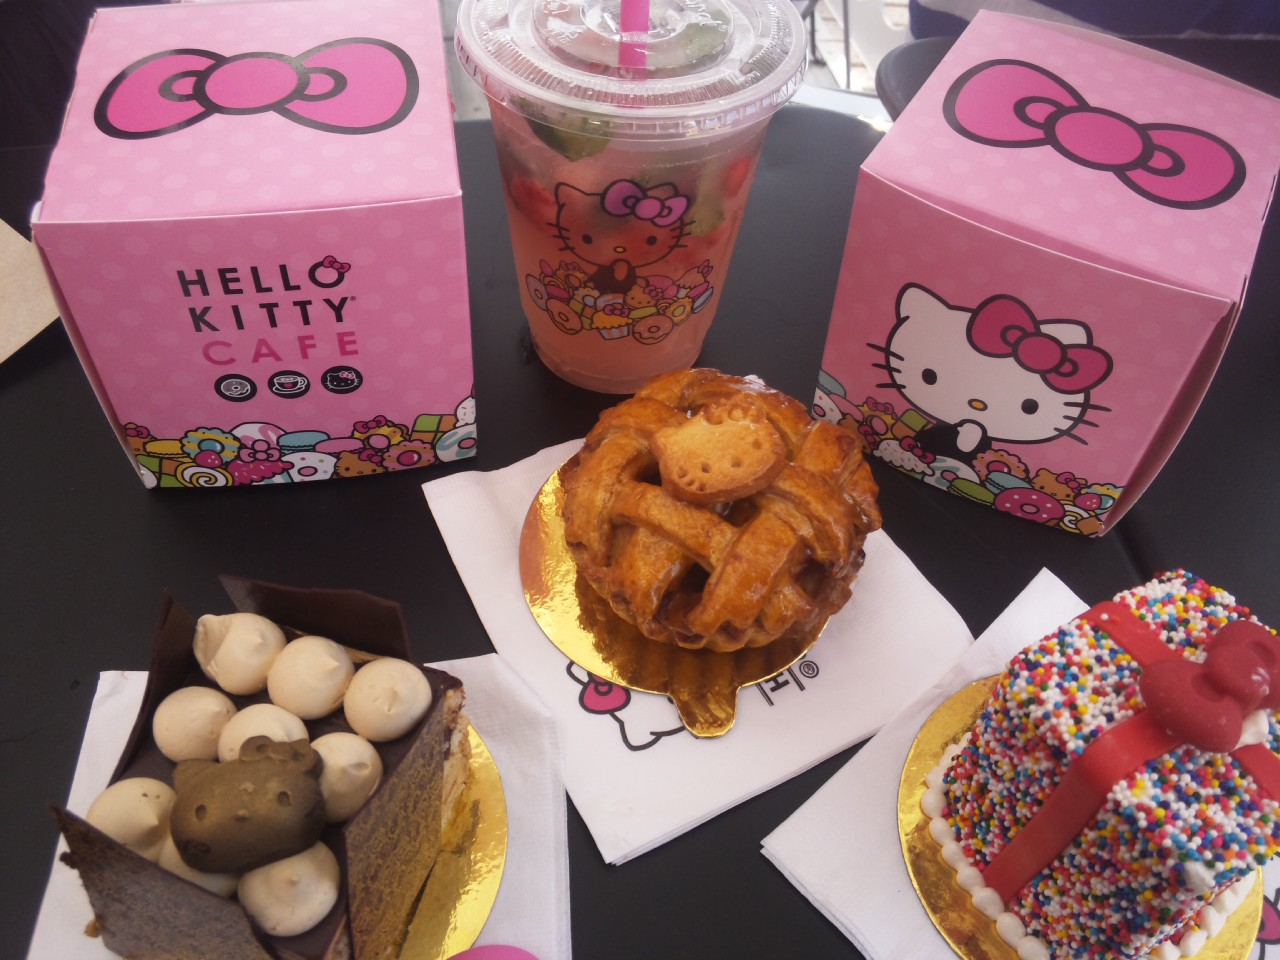 HELLO KITTY CAFE メニュー!